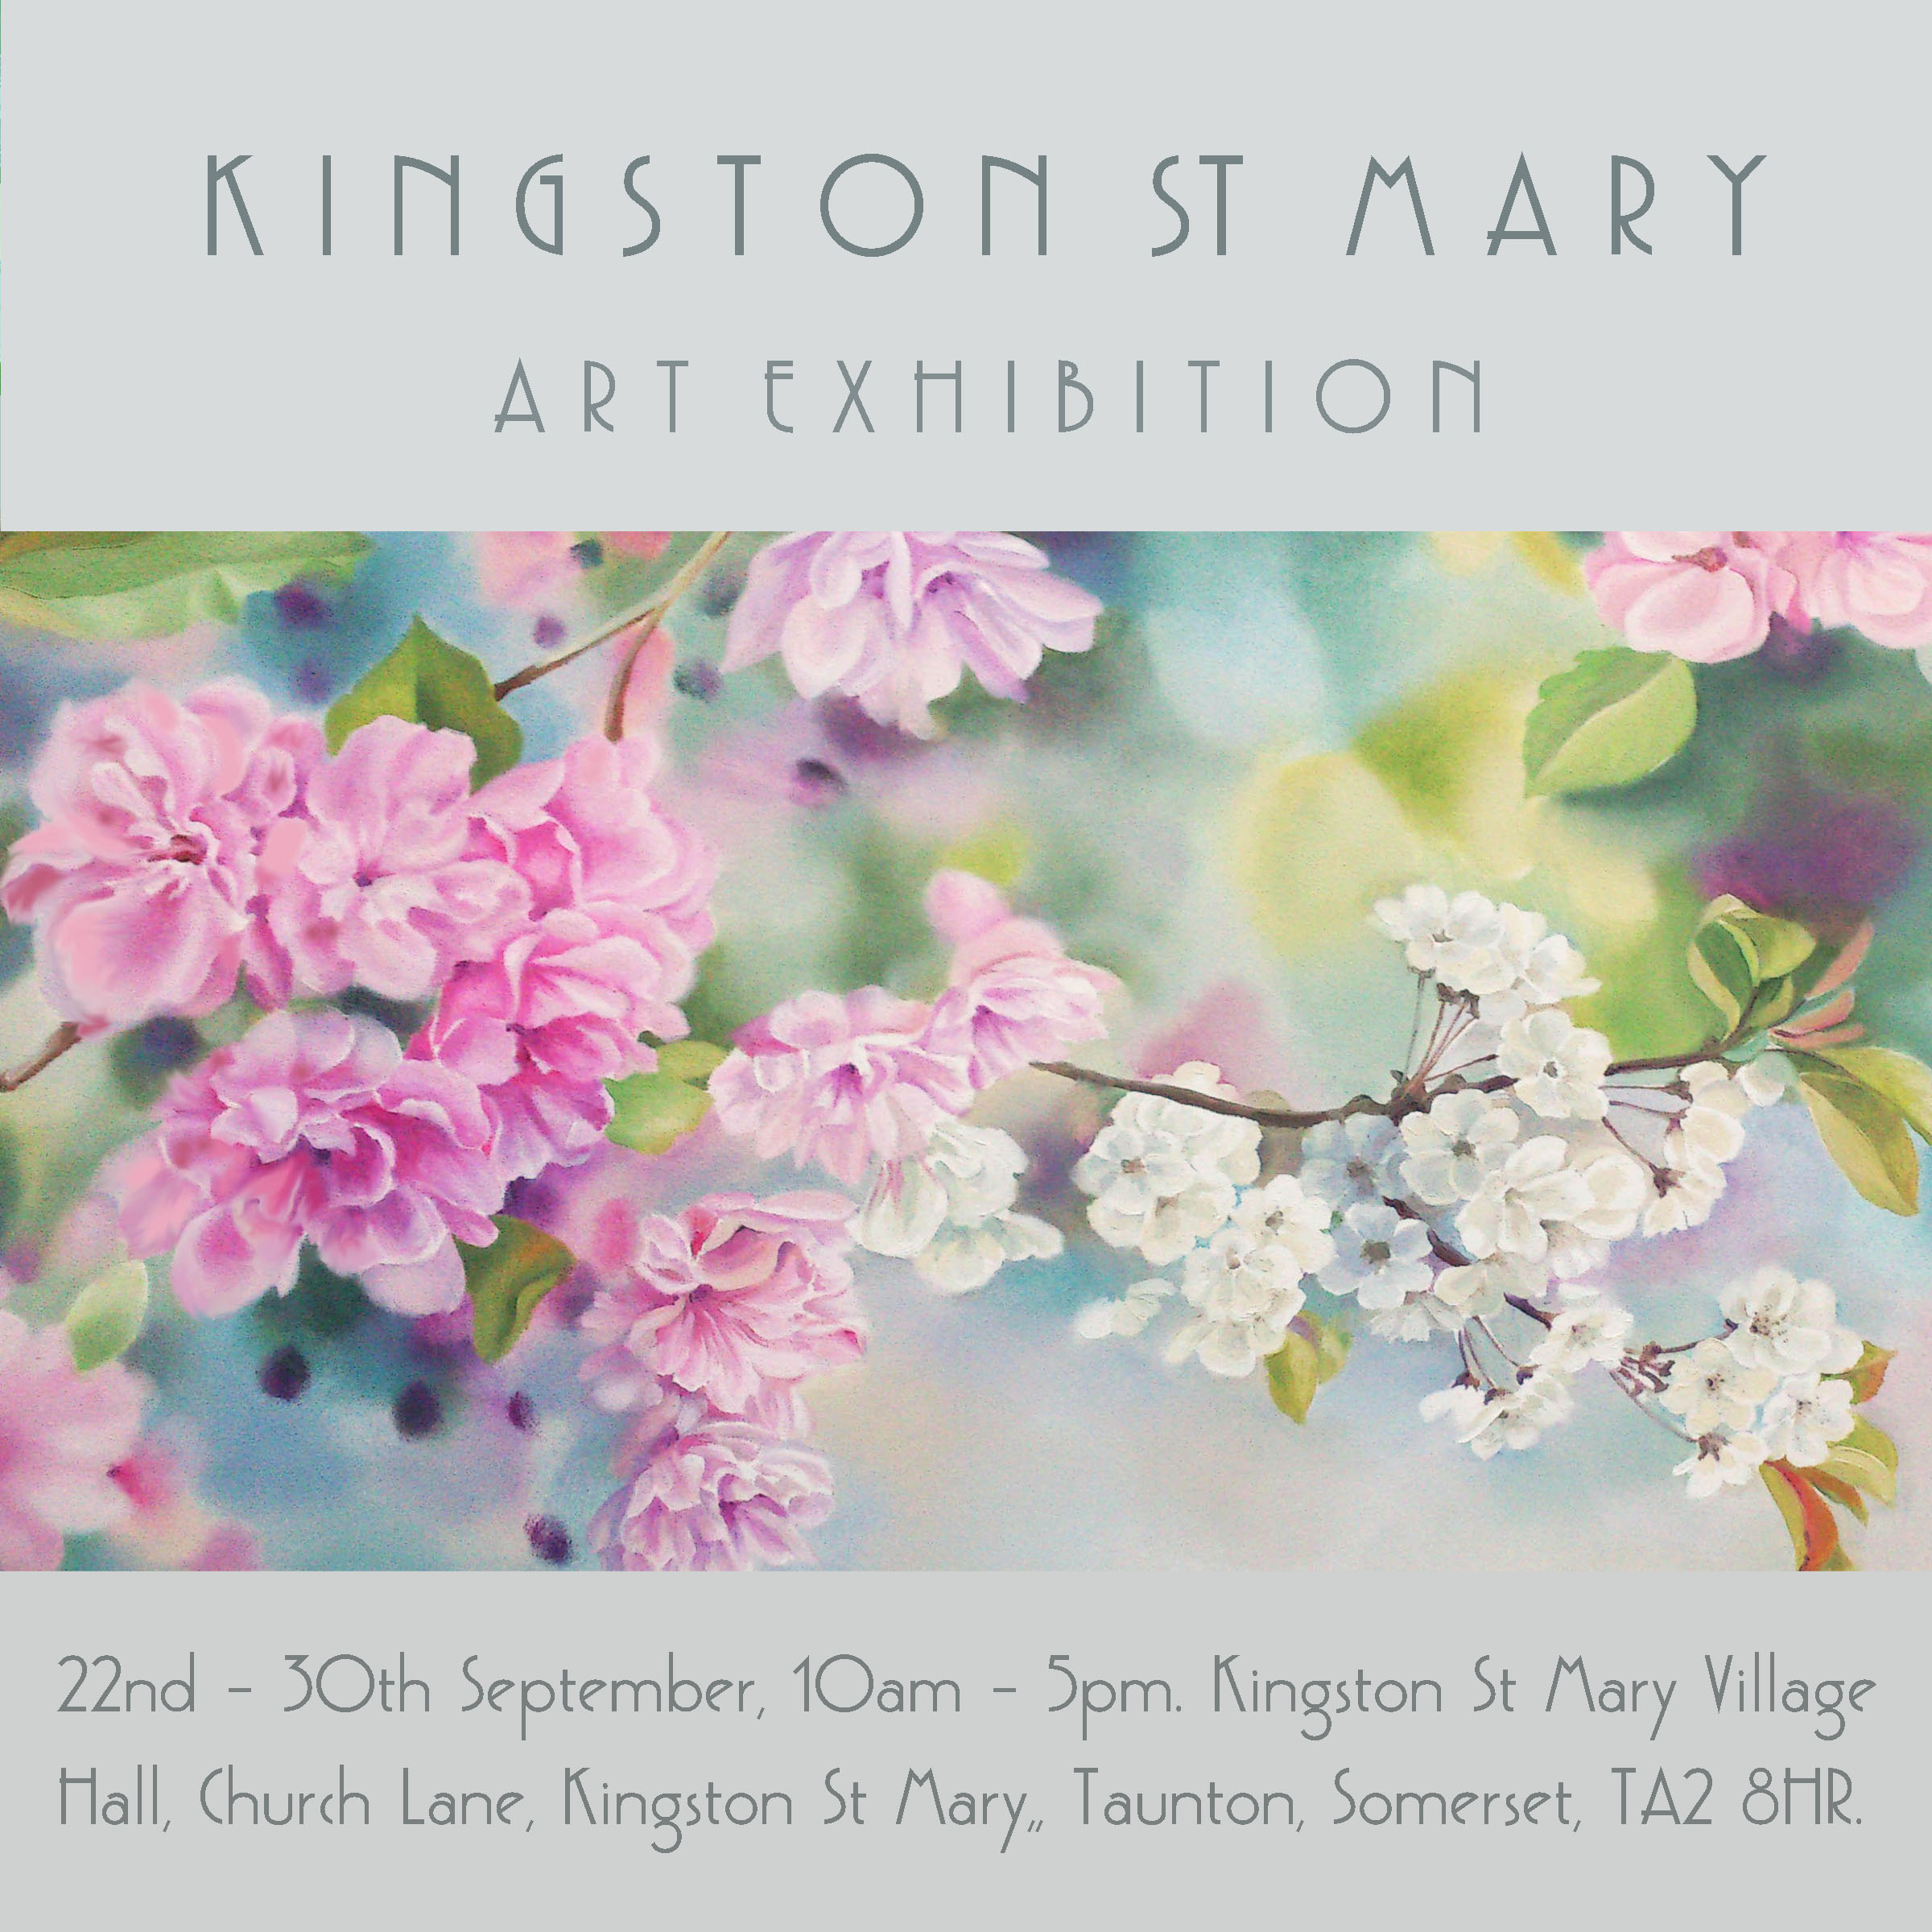 Very excited about the up coming annual art exhibition in Kingston St Mary. I will be exhibiting oil paintings, fine art prints and greetings cards. Come in and see us and chat to the artists.